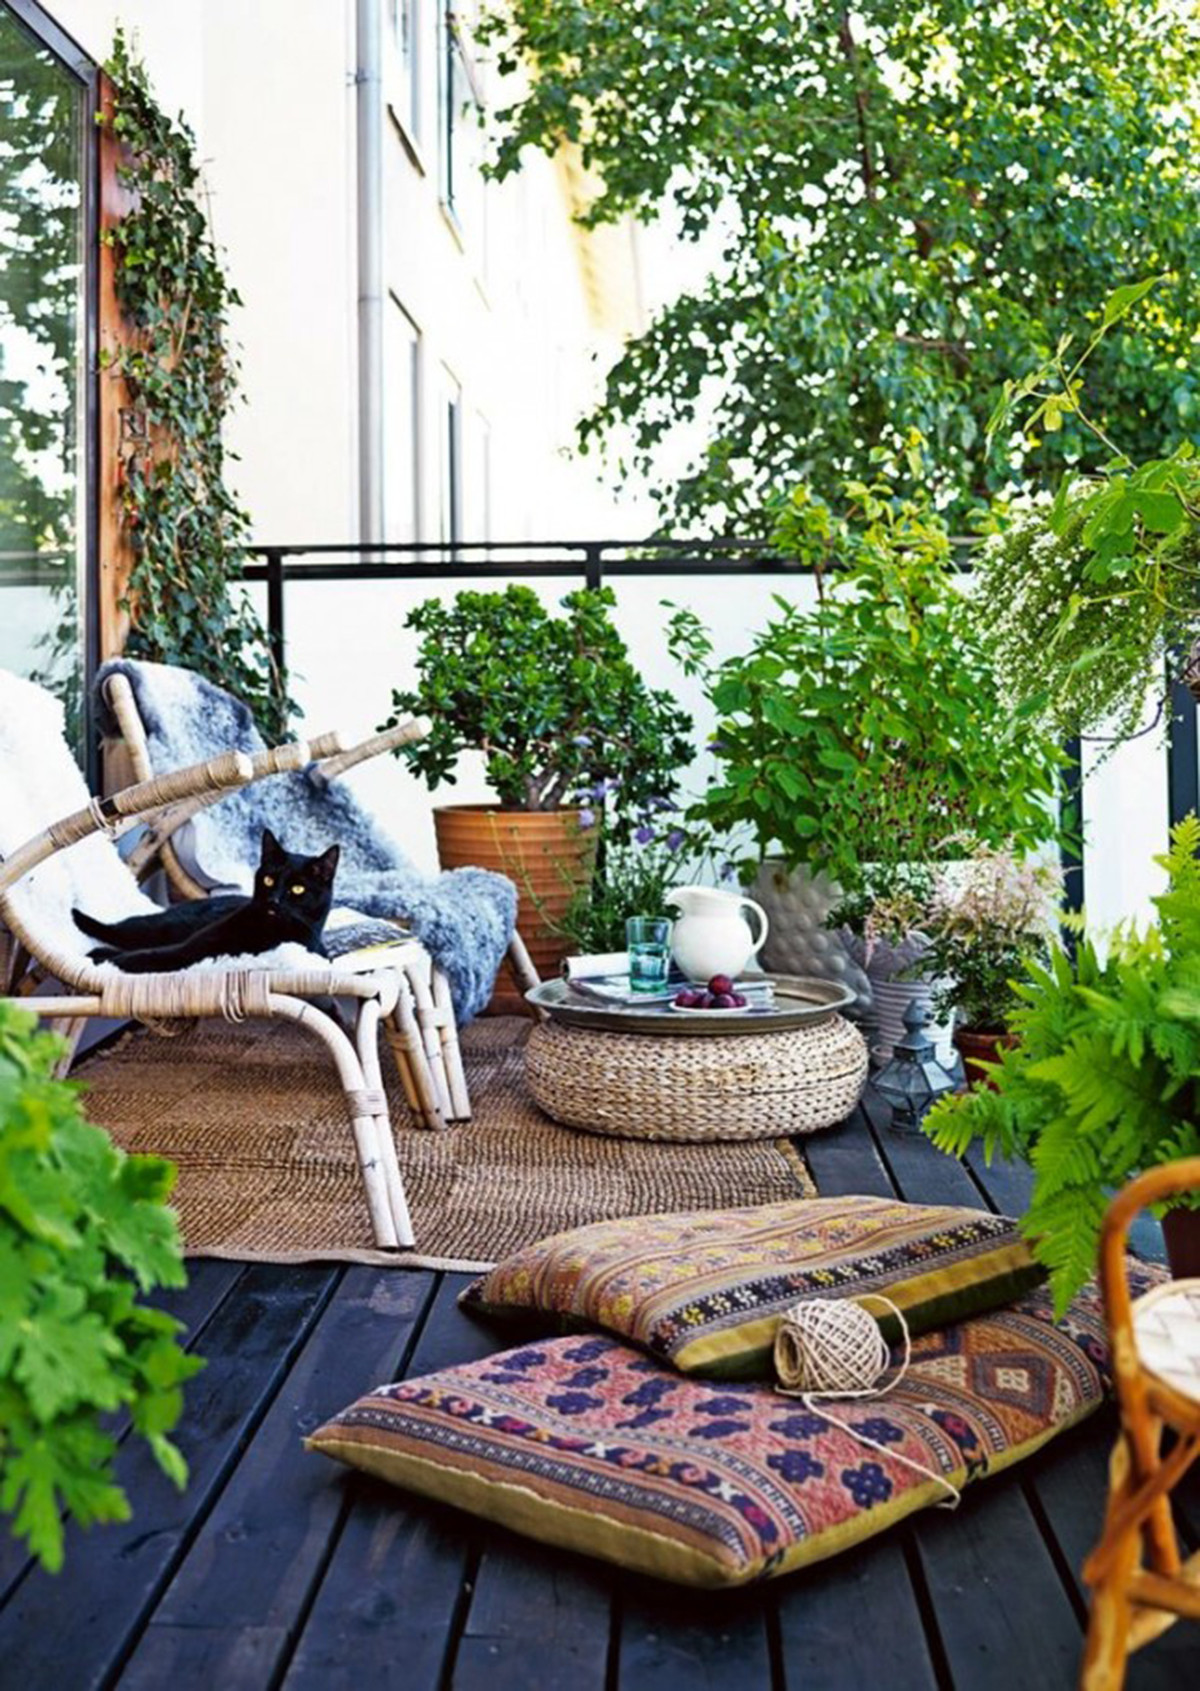 50 best balcony garden ideas and designs for 2018 for Balcony garden design ideas